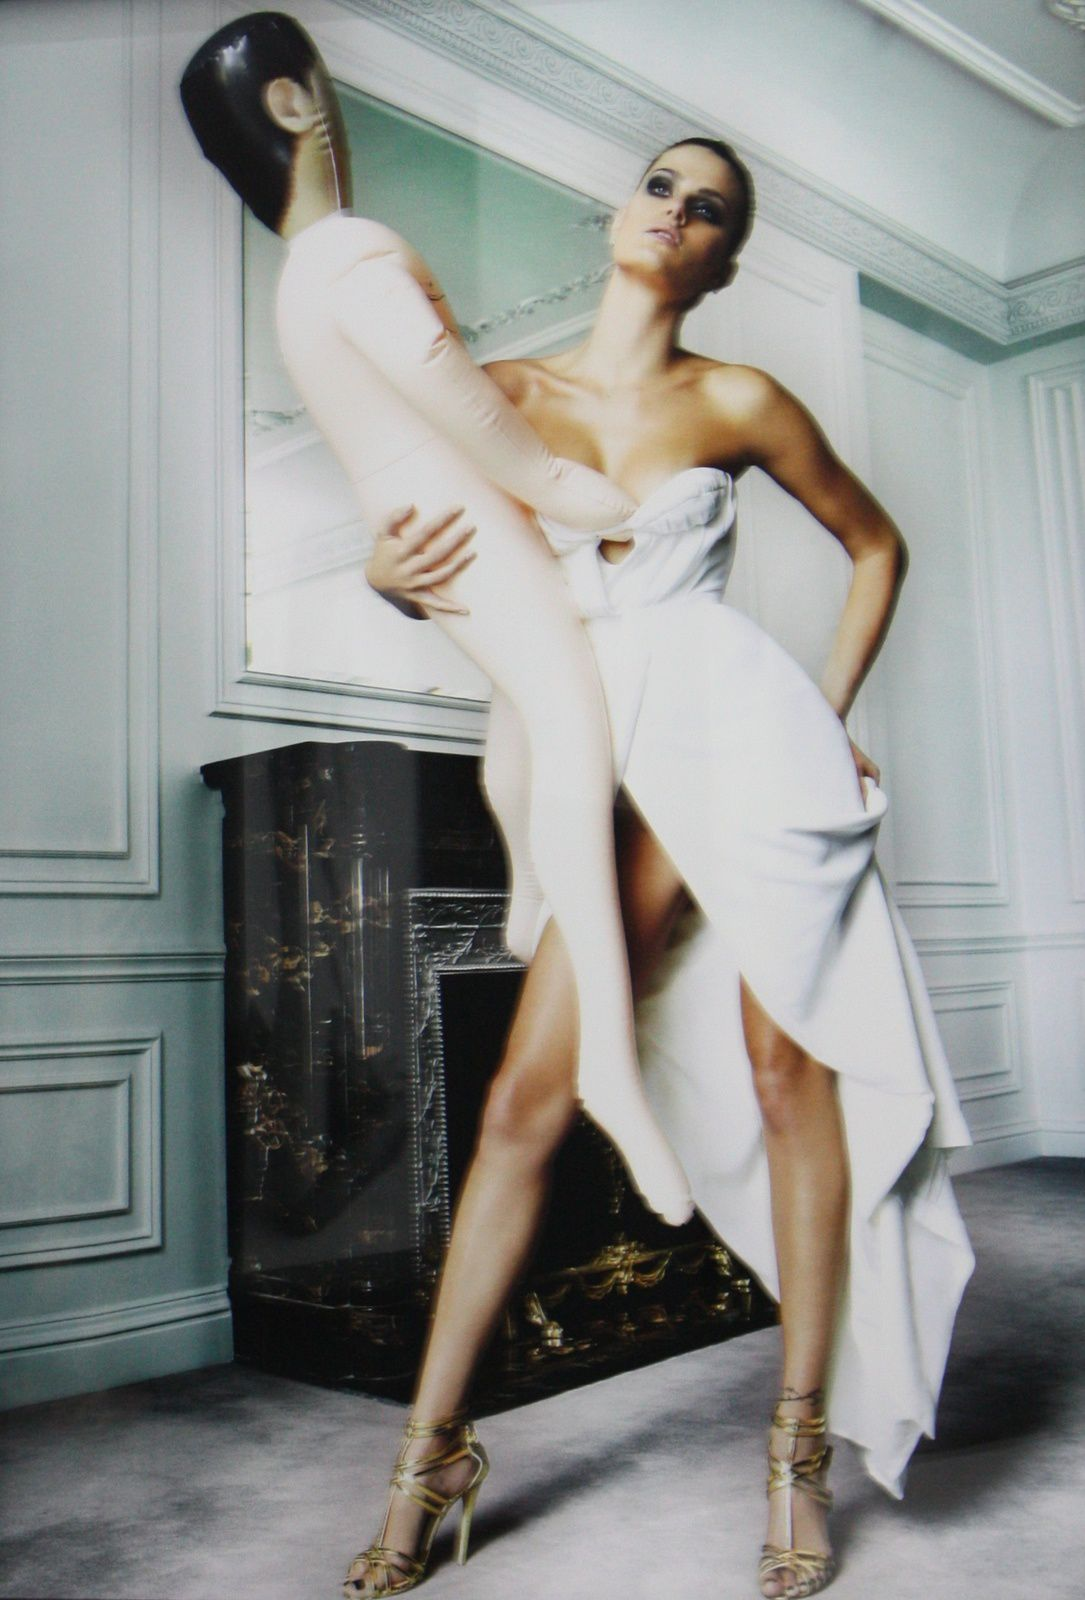 Expo Photographie Contemporaine: Mario TESTINO  &quot&#x3B;Extremes&quot&#x3B;